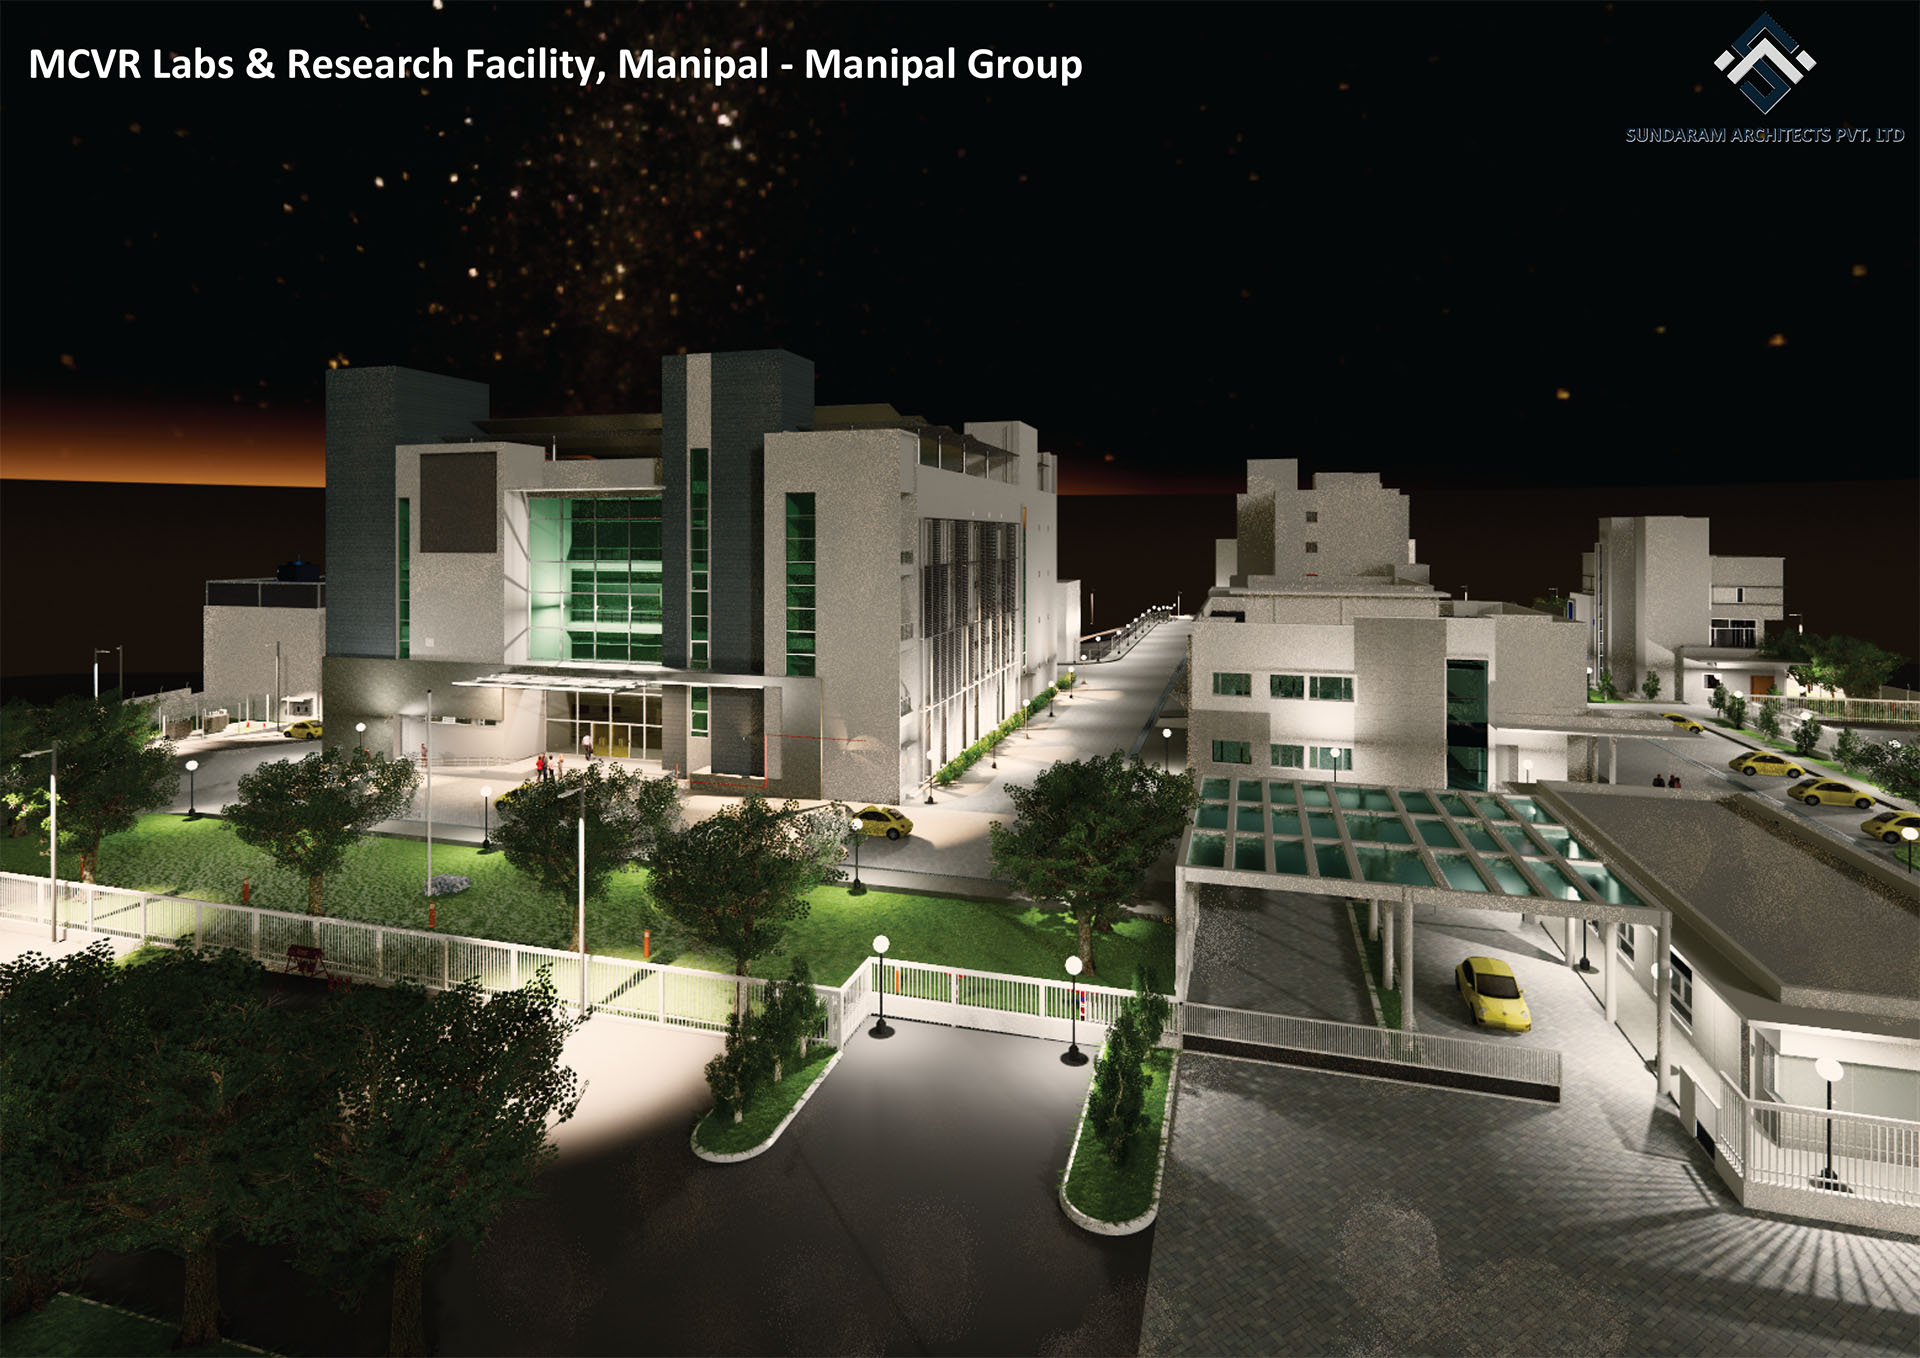 Sundaram Architects designed MCVR Labs & Research Facility, Manipal - Manipal Group